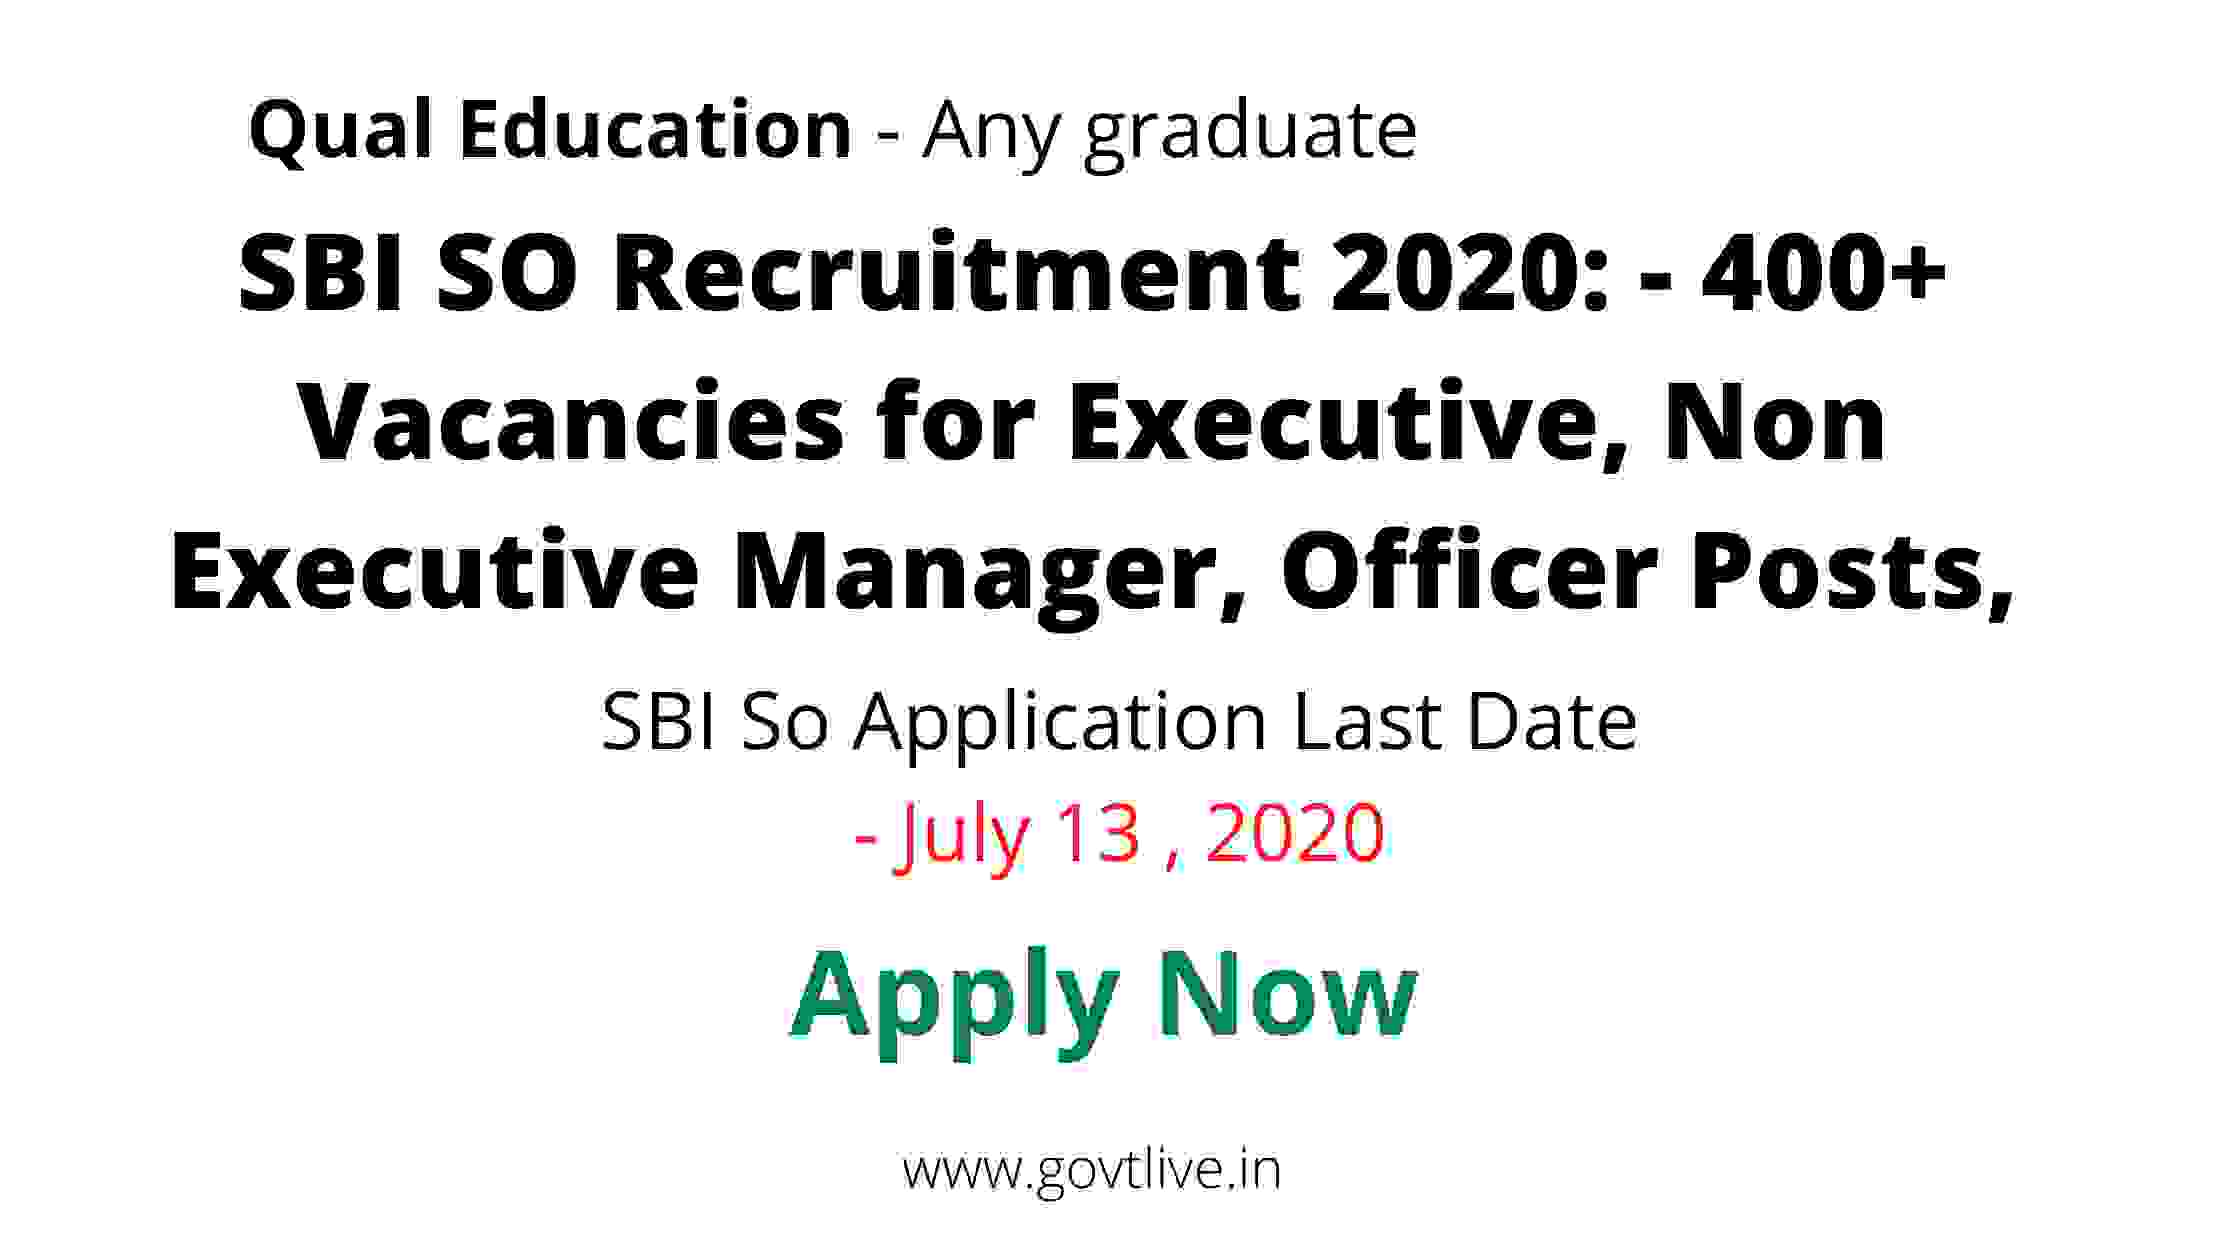 SBI SO Recruitment 2020: - 400+ Vacancies for Executive, Non Executive Manager, Officer Posts, Apply @ sbi.co.in